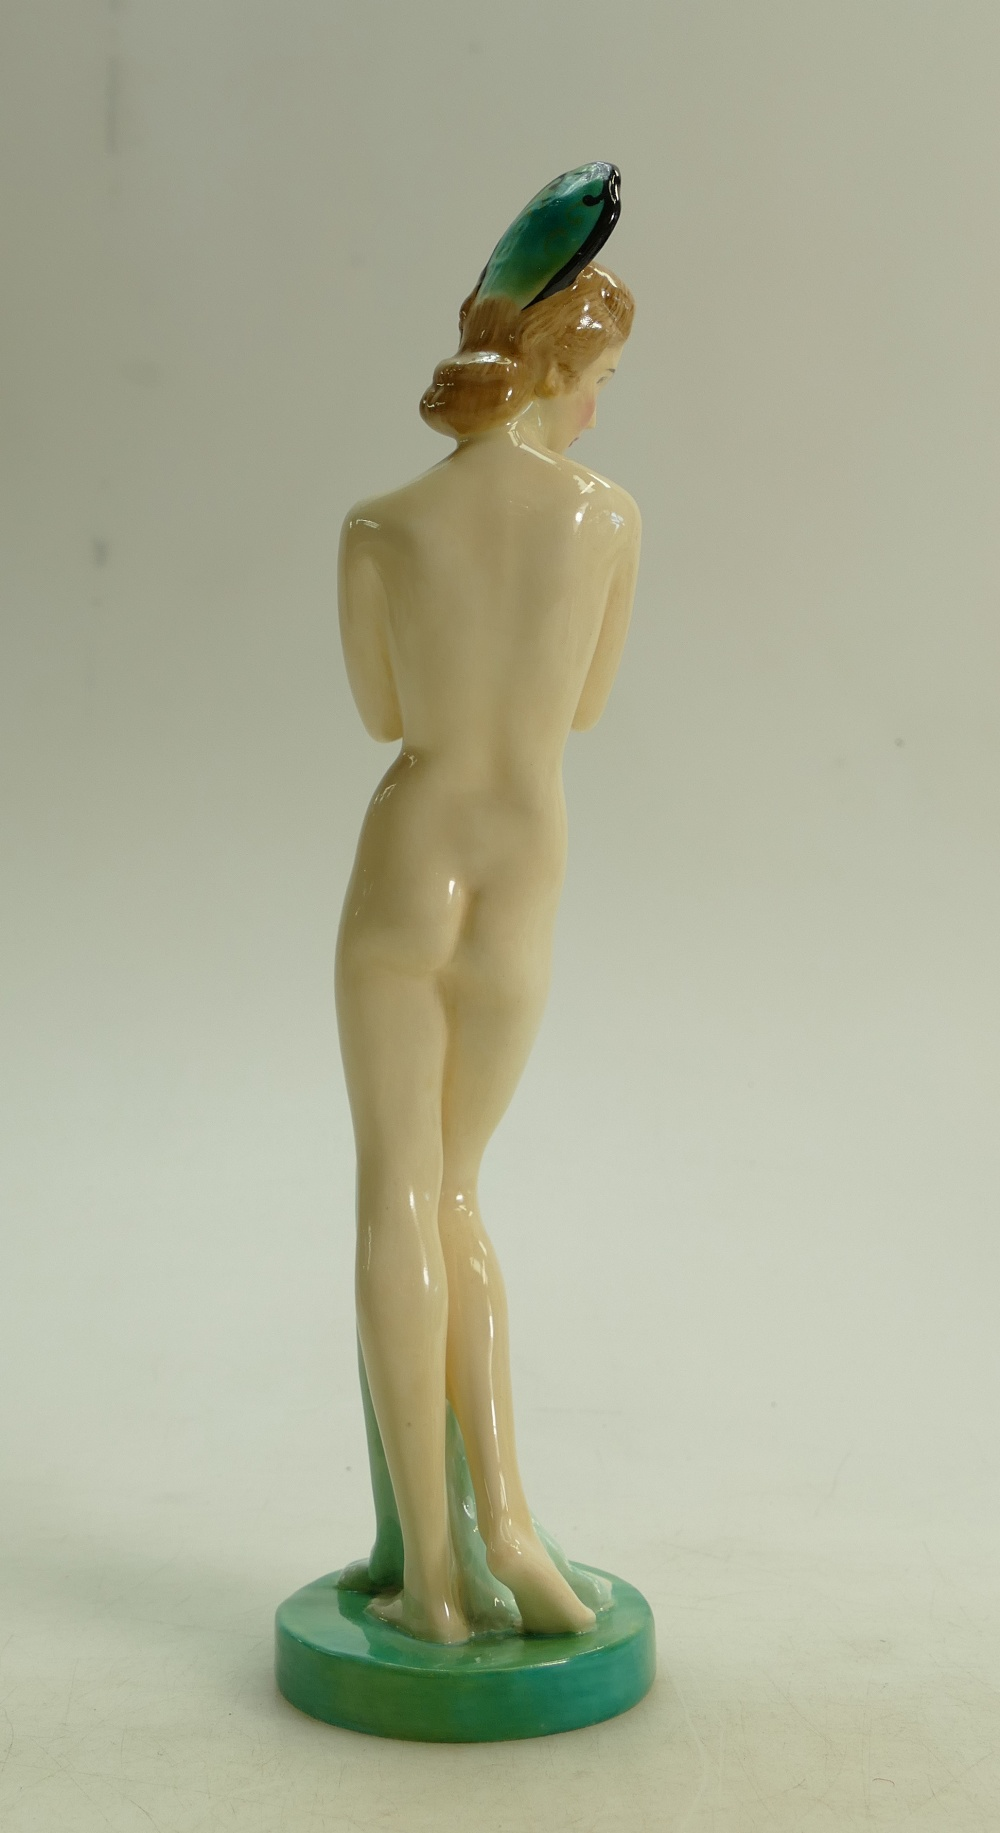 Lot 31 - Royal Doulton figure Dawn HN1858: Early model with headdress dated 1938.